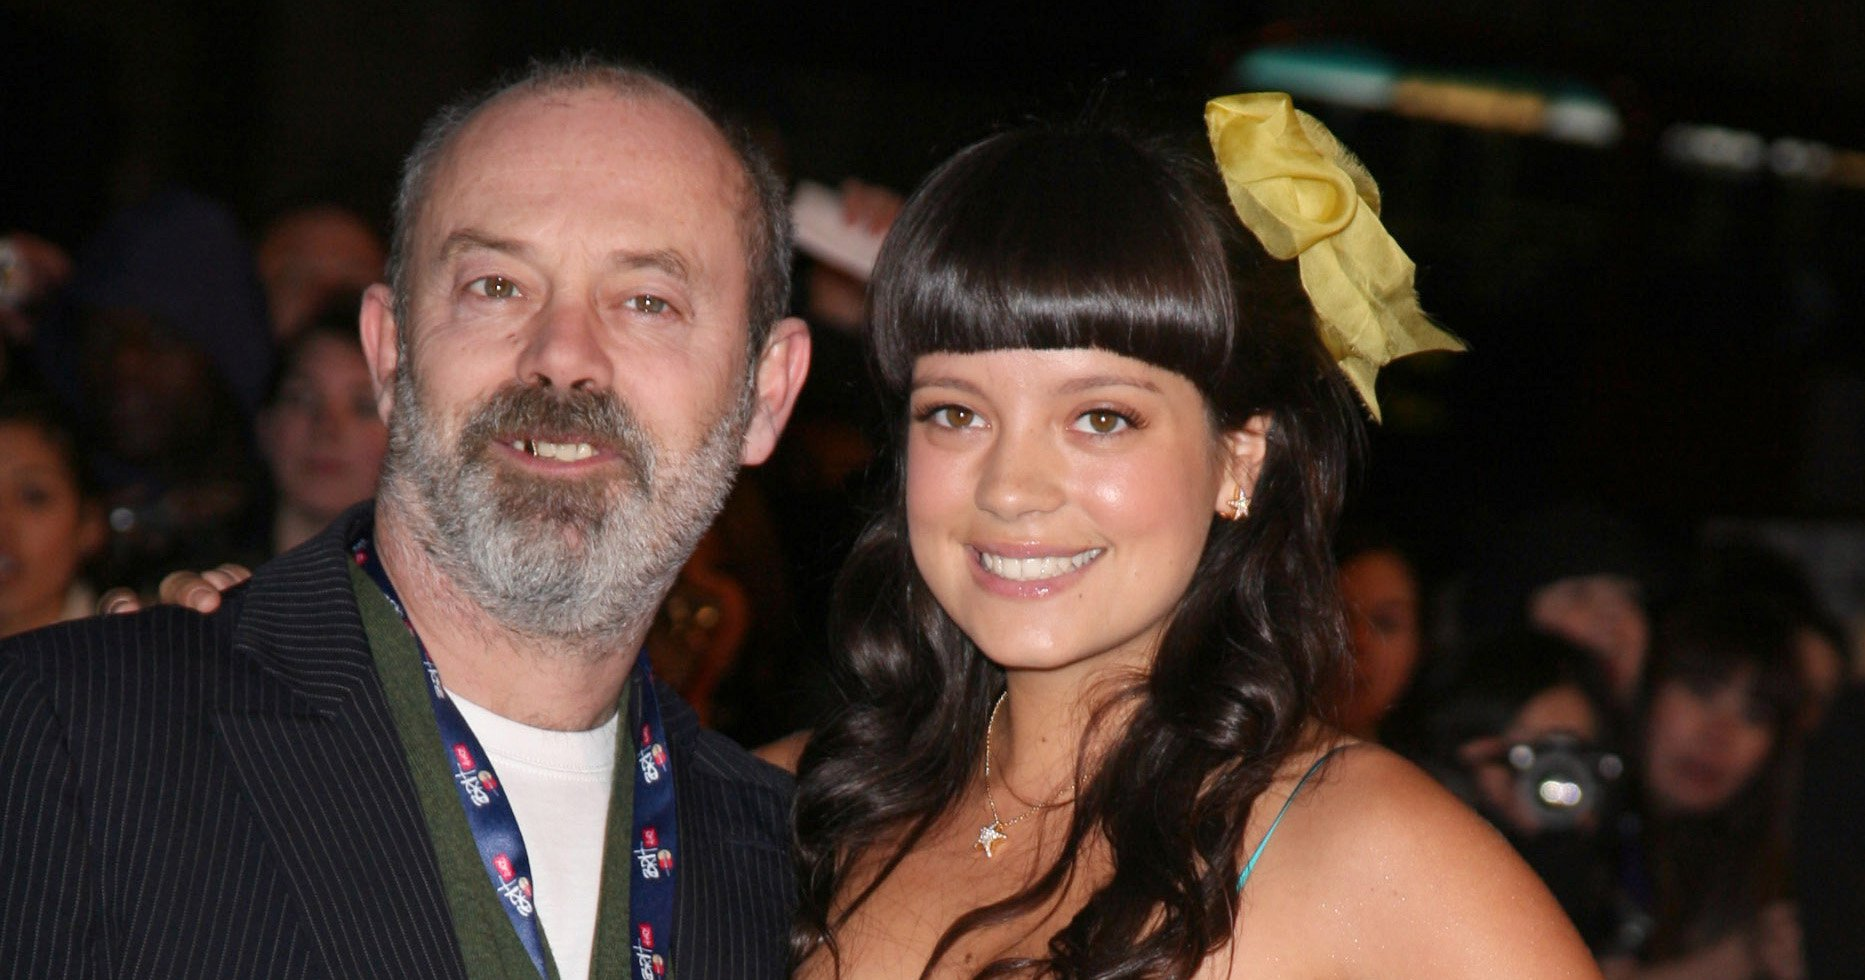 Lily Allen & Keith Allen Attend The Brit Awards 2007 At London'S Earls Court. (Photo by Antony Jones/Justin Goff\UK Press via Getty Images)